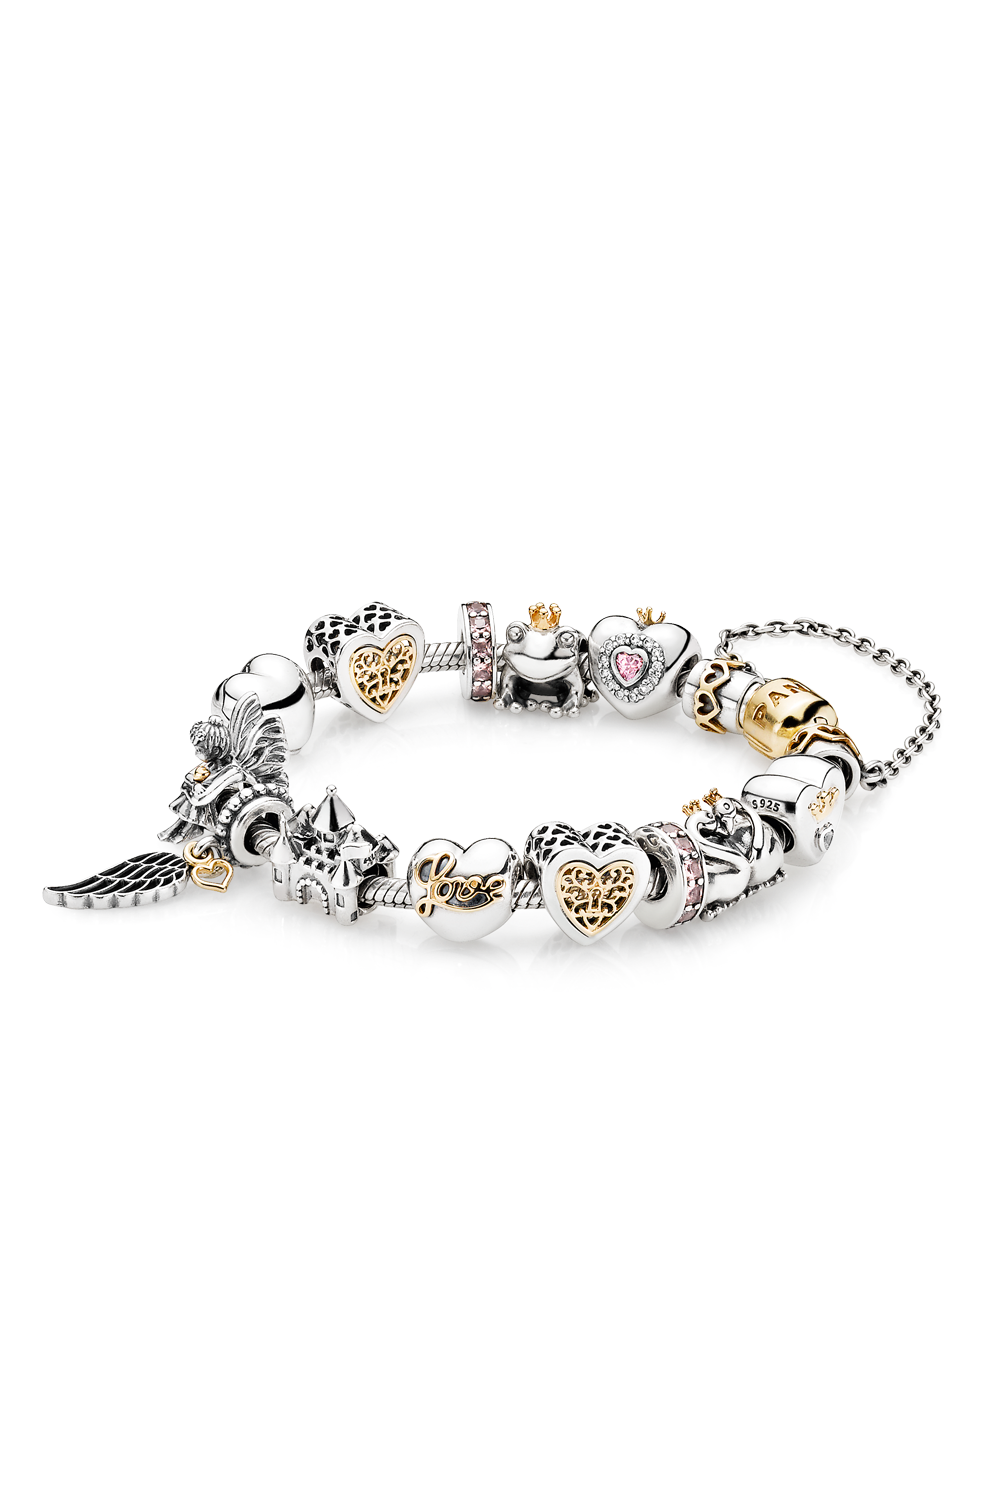 Create your own fairy tale with charms from pandora